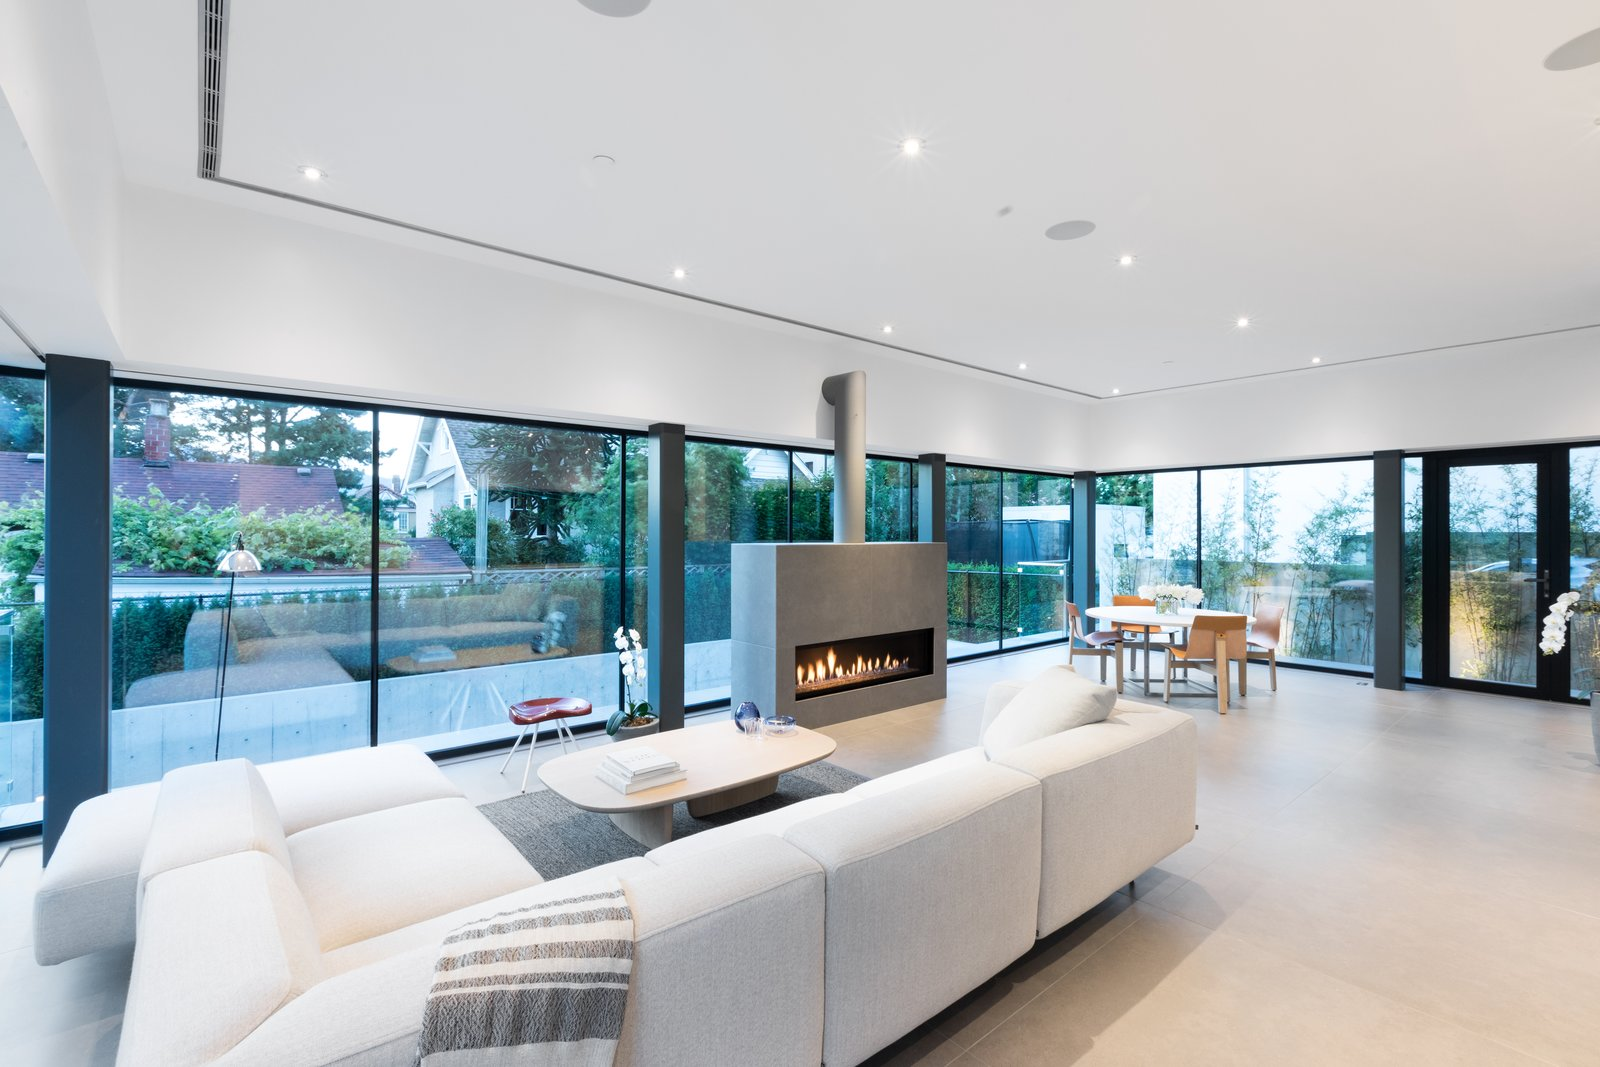 Tagged: Living Room, Ribbon Fireplace, Gas Burning Fireplace, Rug Floor, Sectional, Coffee Tables, Chair, Recessed Lighting, Floor Lighting, Table, and Stools.  Photo 4 of 12 in Wrapped in Galvanized Steel, 'Cube House' in Vancouver Asks $12.8M